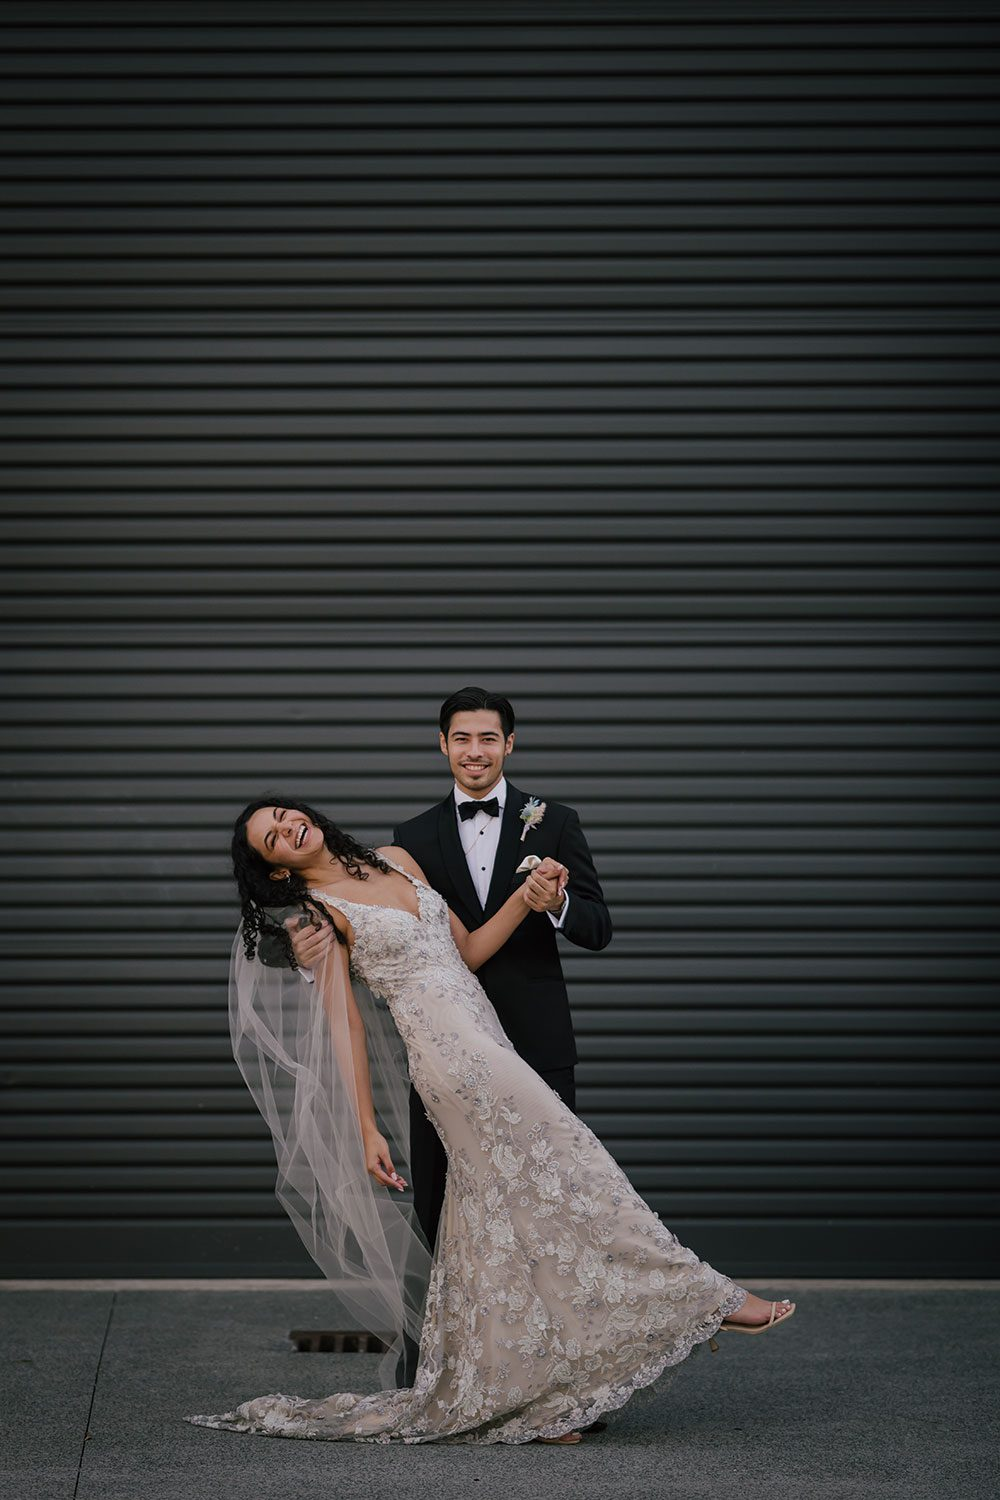 Bride wearing Kazumi Gown in soft grey with hand embellished lace and a low back - dancing outside with groom